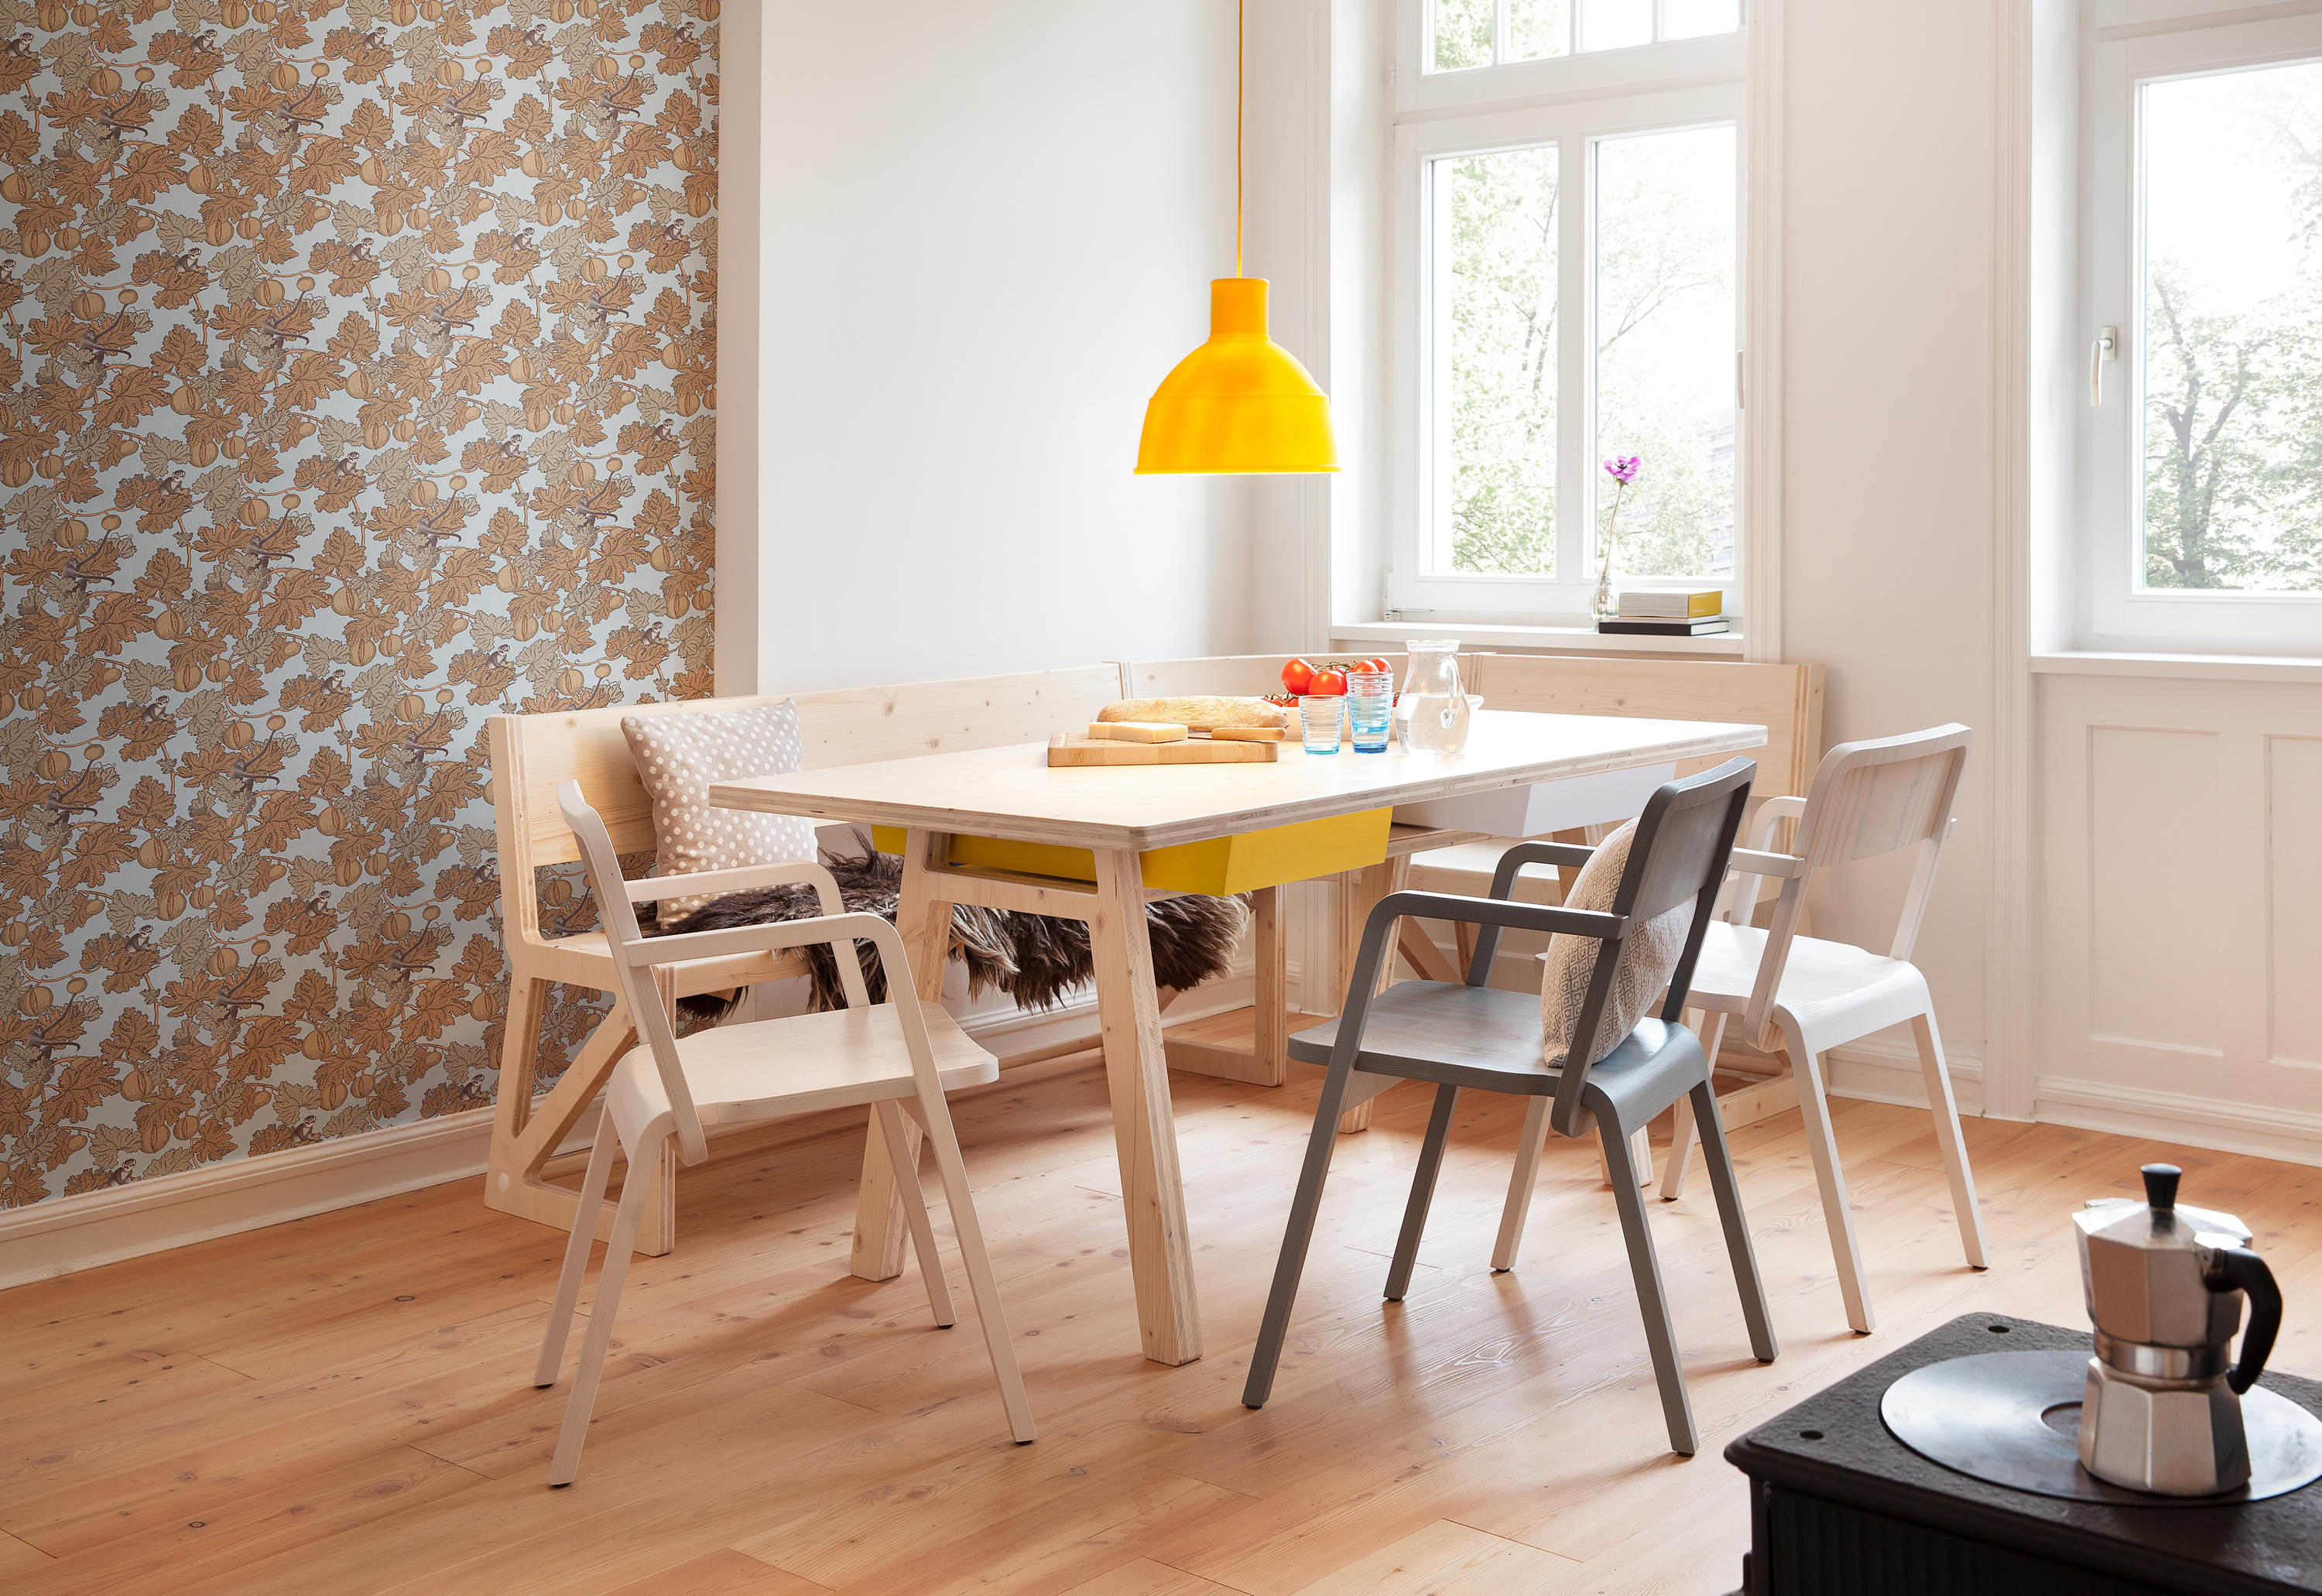 Prater Chair Chairs From Richard Lampert Architonic